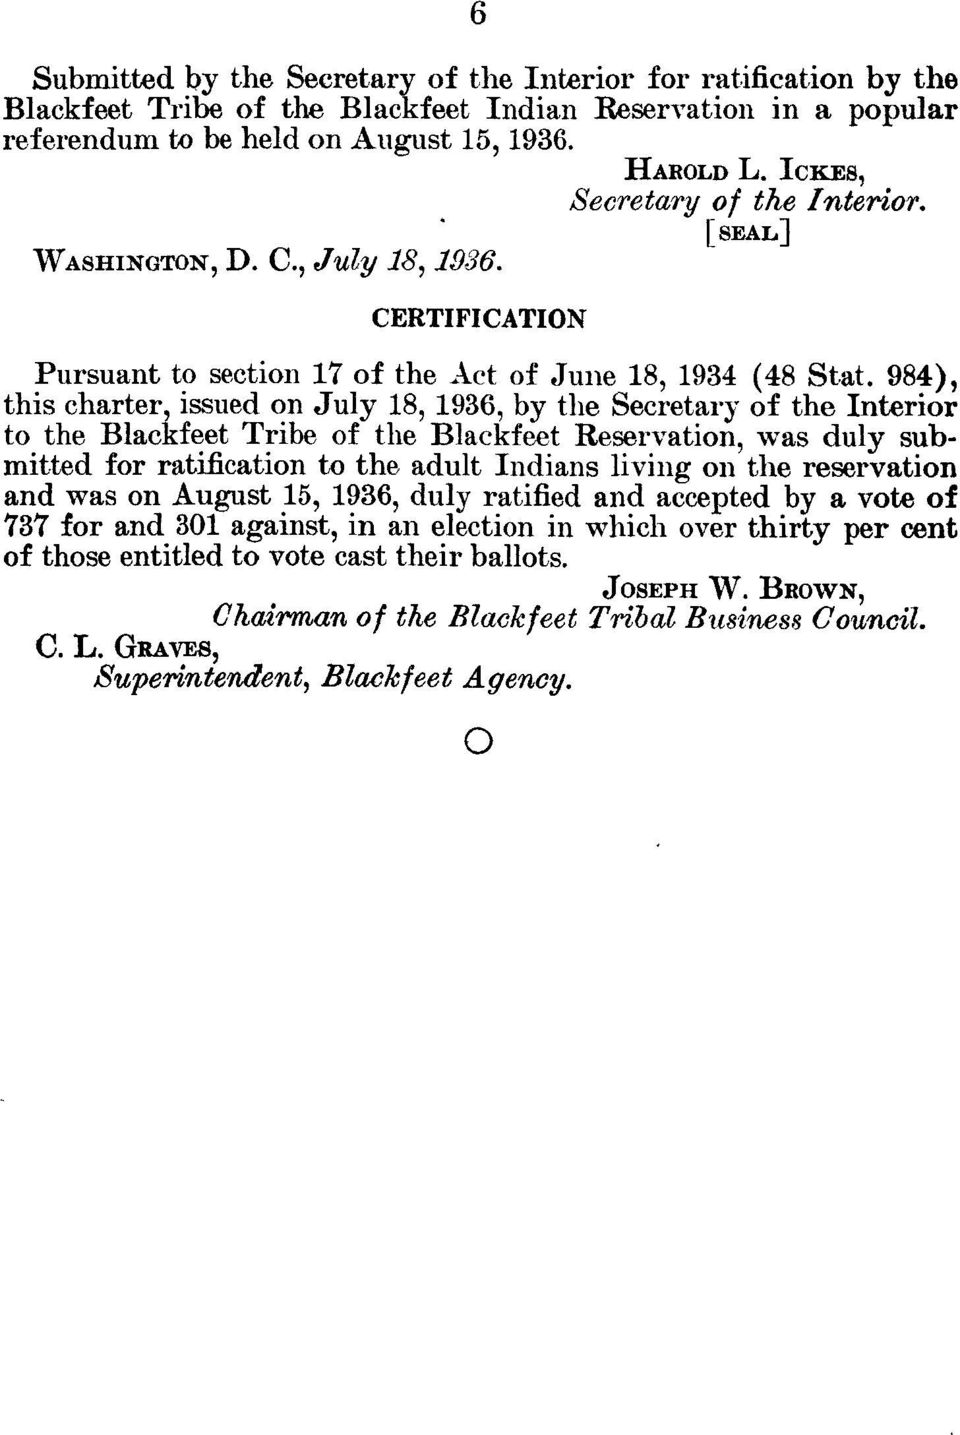 984), this charter, issued on July 18, 1936, by the Secretary of the Interior to the Blackfeet Tribe of the Blackfeet Reservation, was duly submitted for ratification to the adult Indians living on